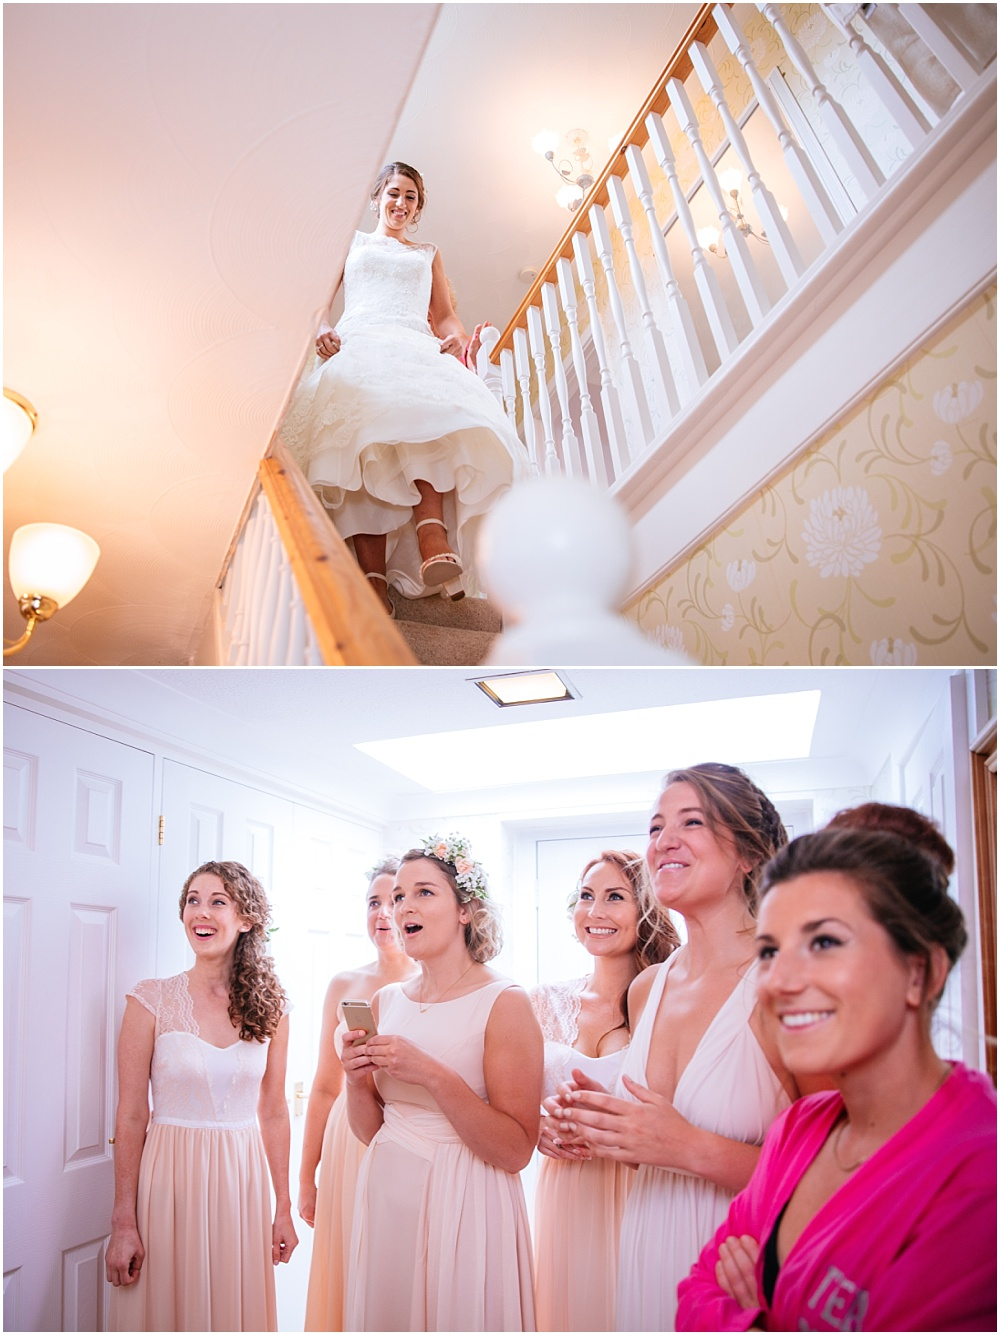 Bridesmaids gasp as they see bride for the first time